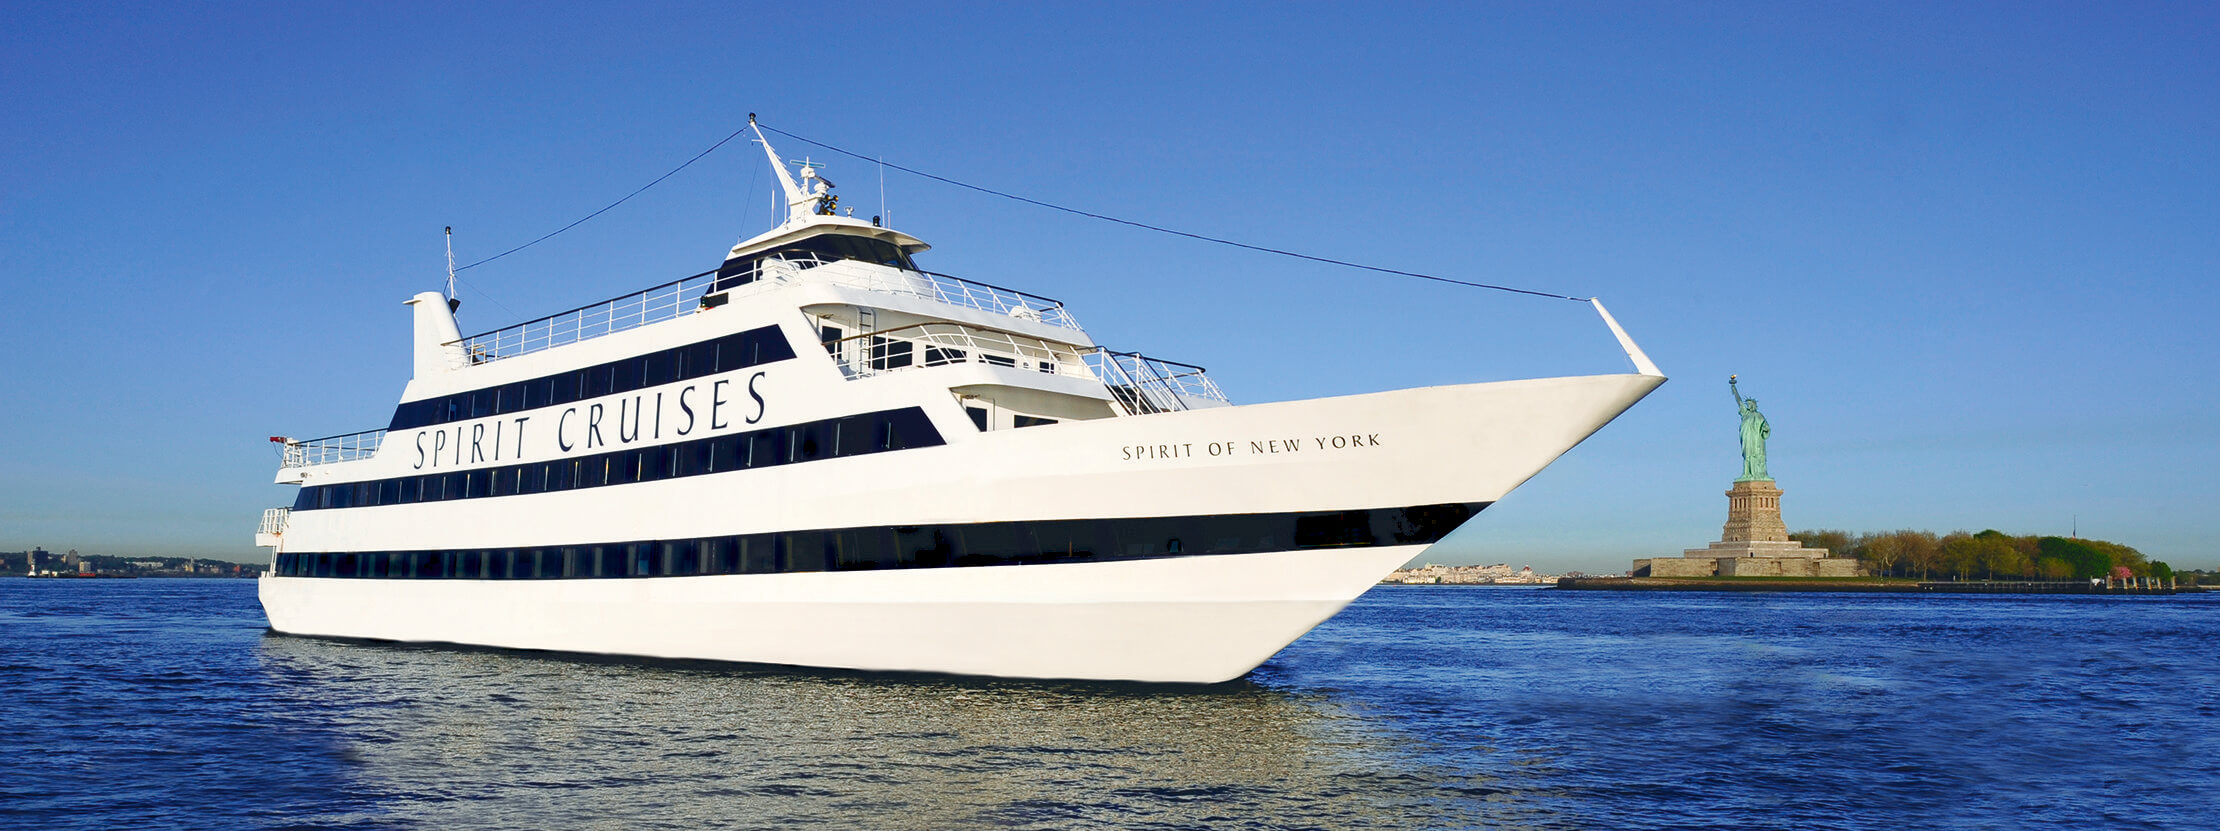 Valentine's Day Dinner Cruise - Feb 14th